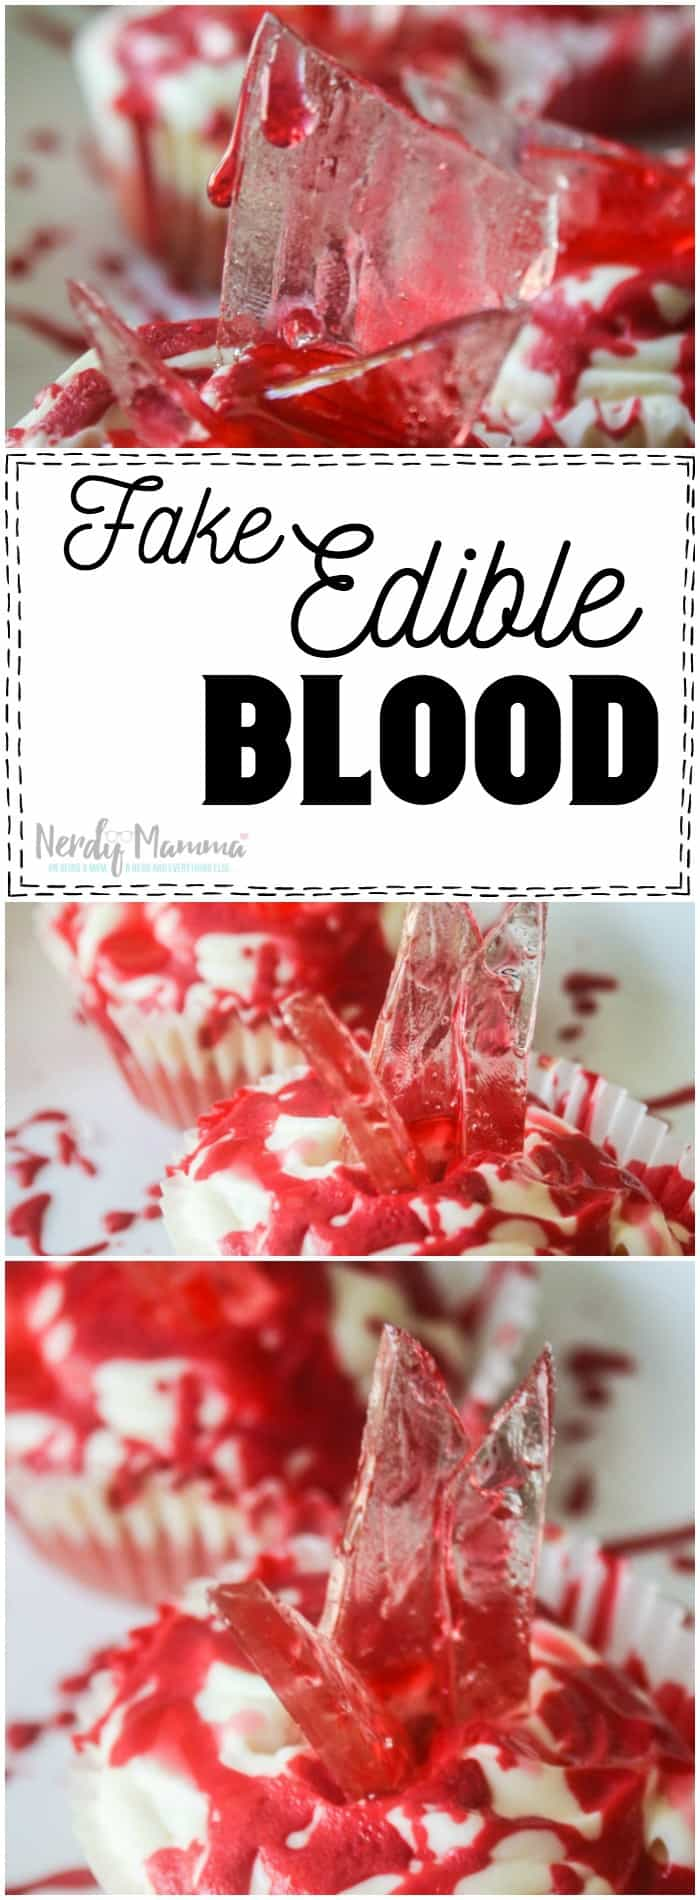 It never even occurred to me to make fake edible blood for cake decorating before! How genius! The kids are going to love it.